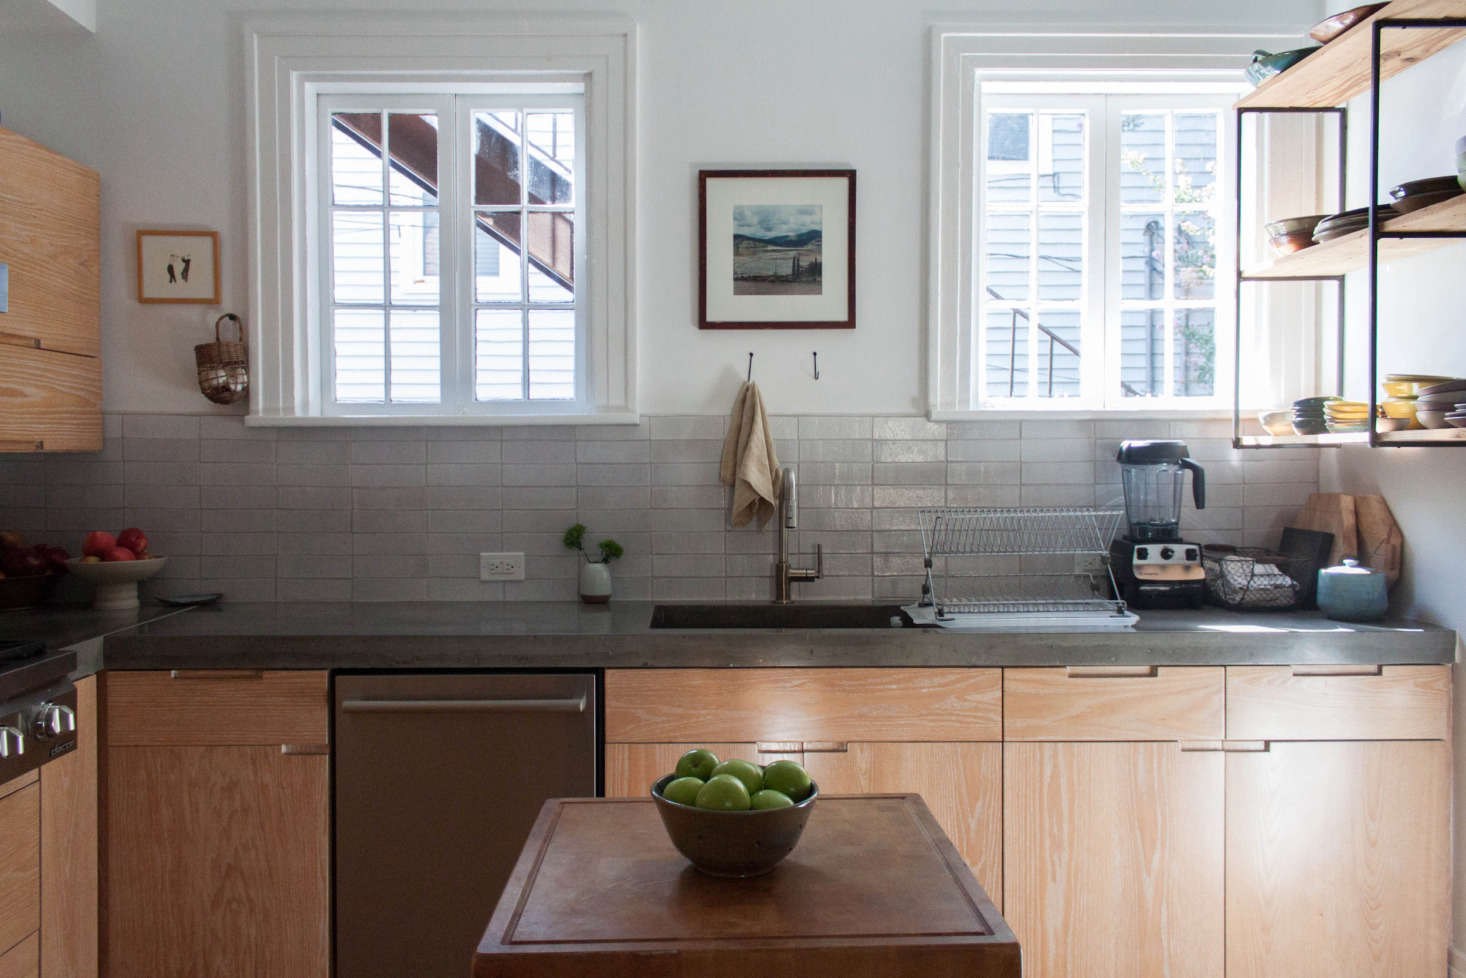 """""""Other than the bathroom, the kitchen was the only room that was fully gutted. My father-in-law helped us figure out the best use of space, and even then we added the butcher block island because we could use the extra counter space,"""" Gabi tells us. """"The cabinets are custom, as are the concrete countertops. I try to balance out all of the warm wood tones with art and pottery."""""""